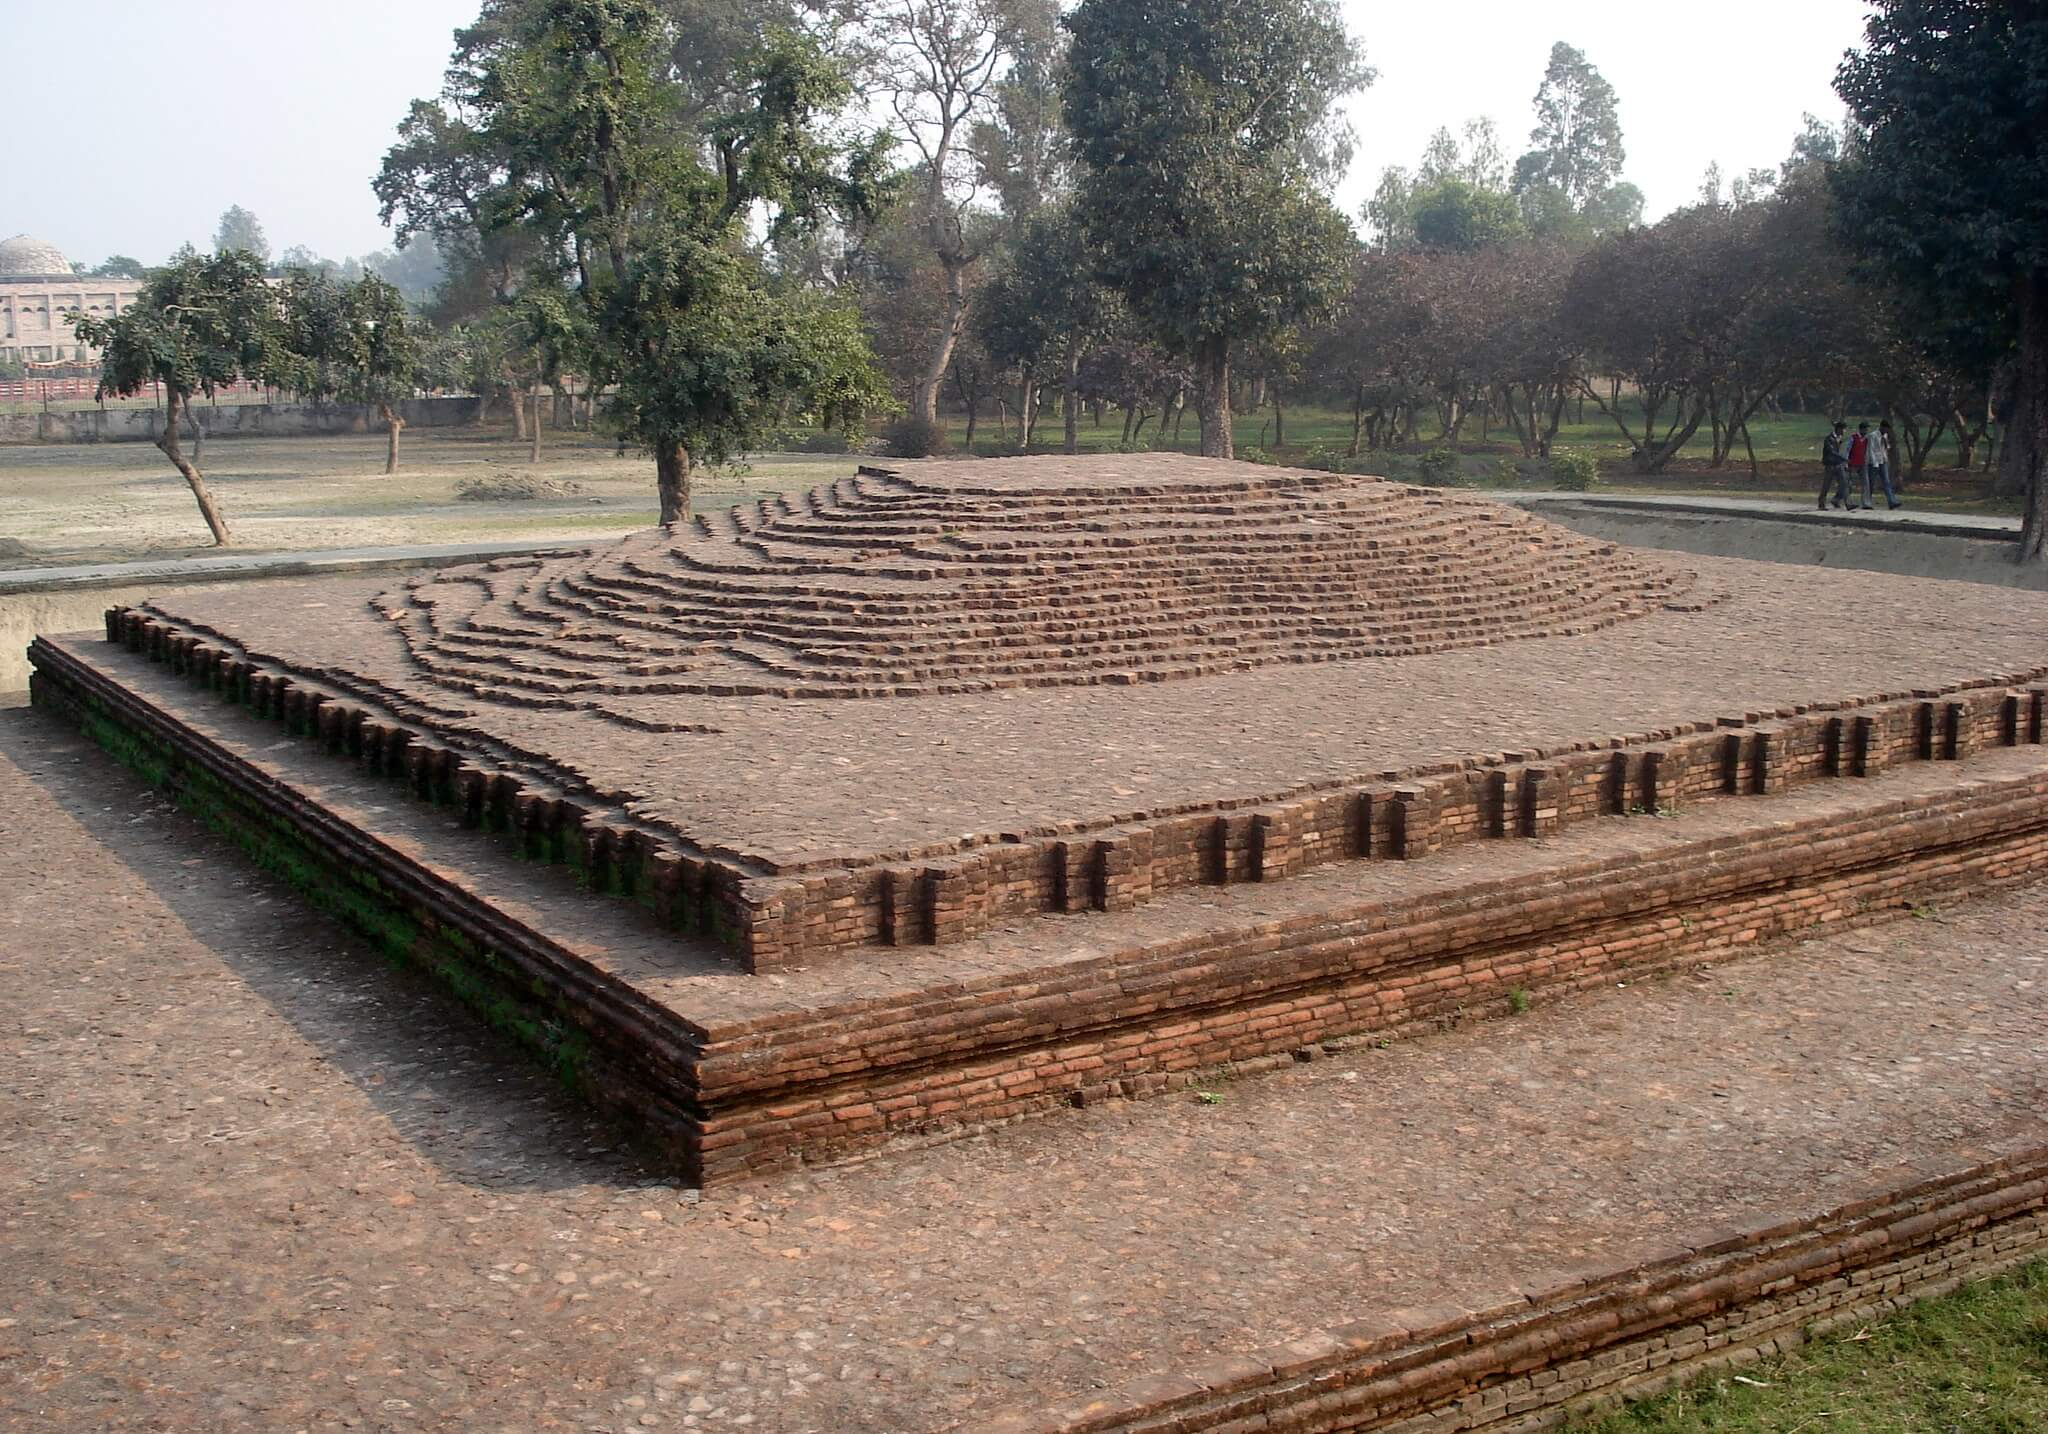 Buddha's body was kept at this location for one week, after he attained Parinirvana Kusinagara